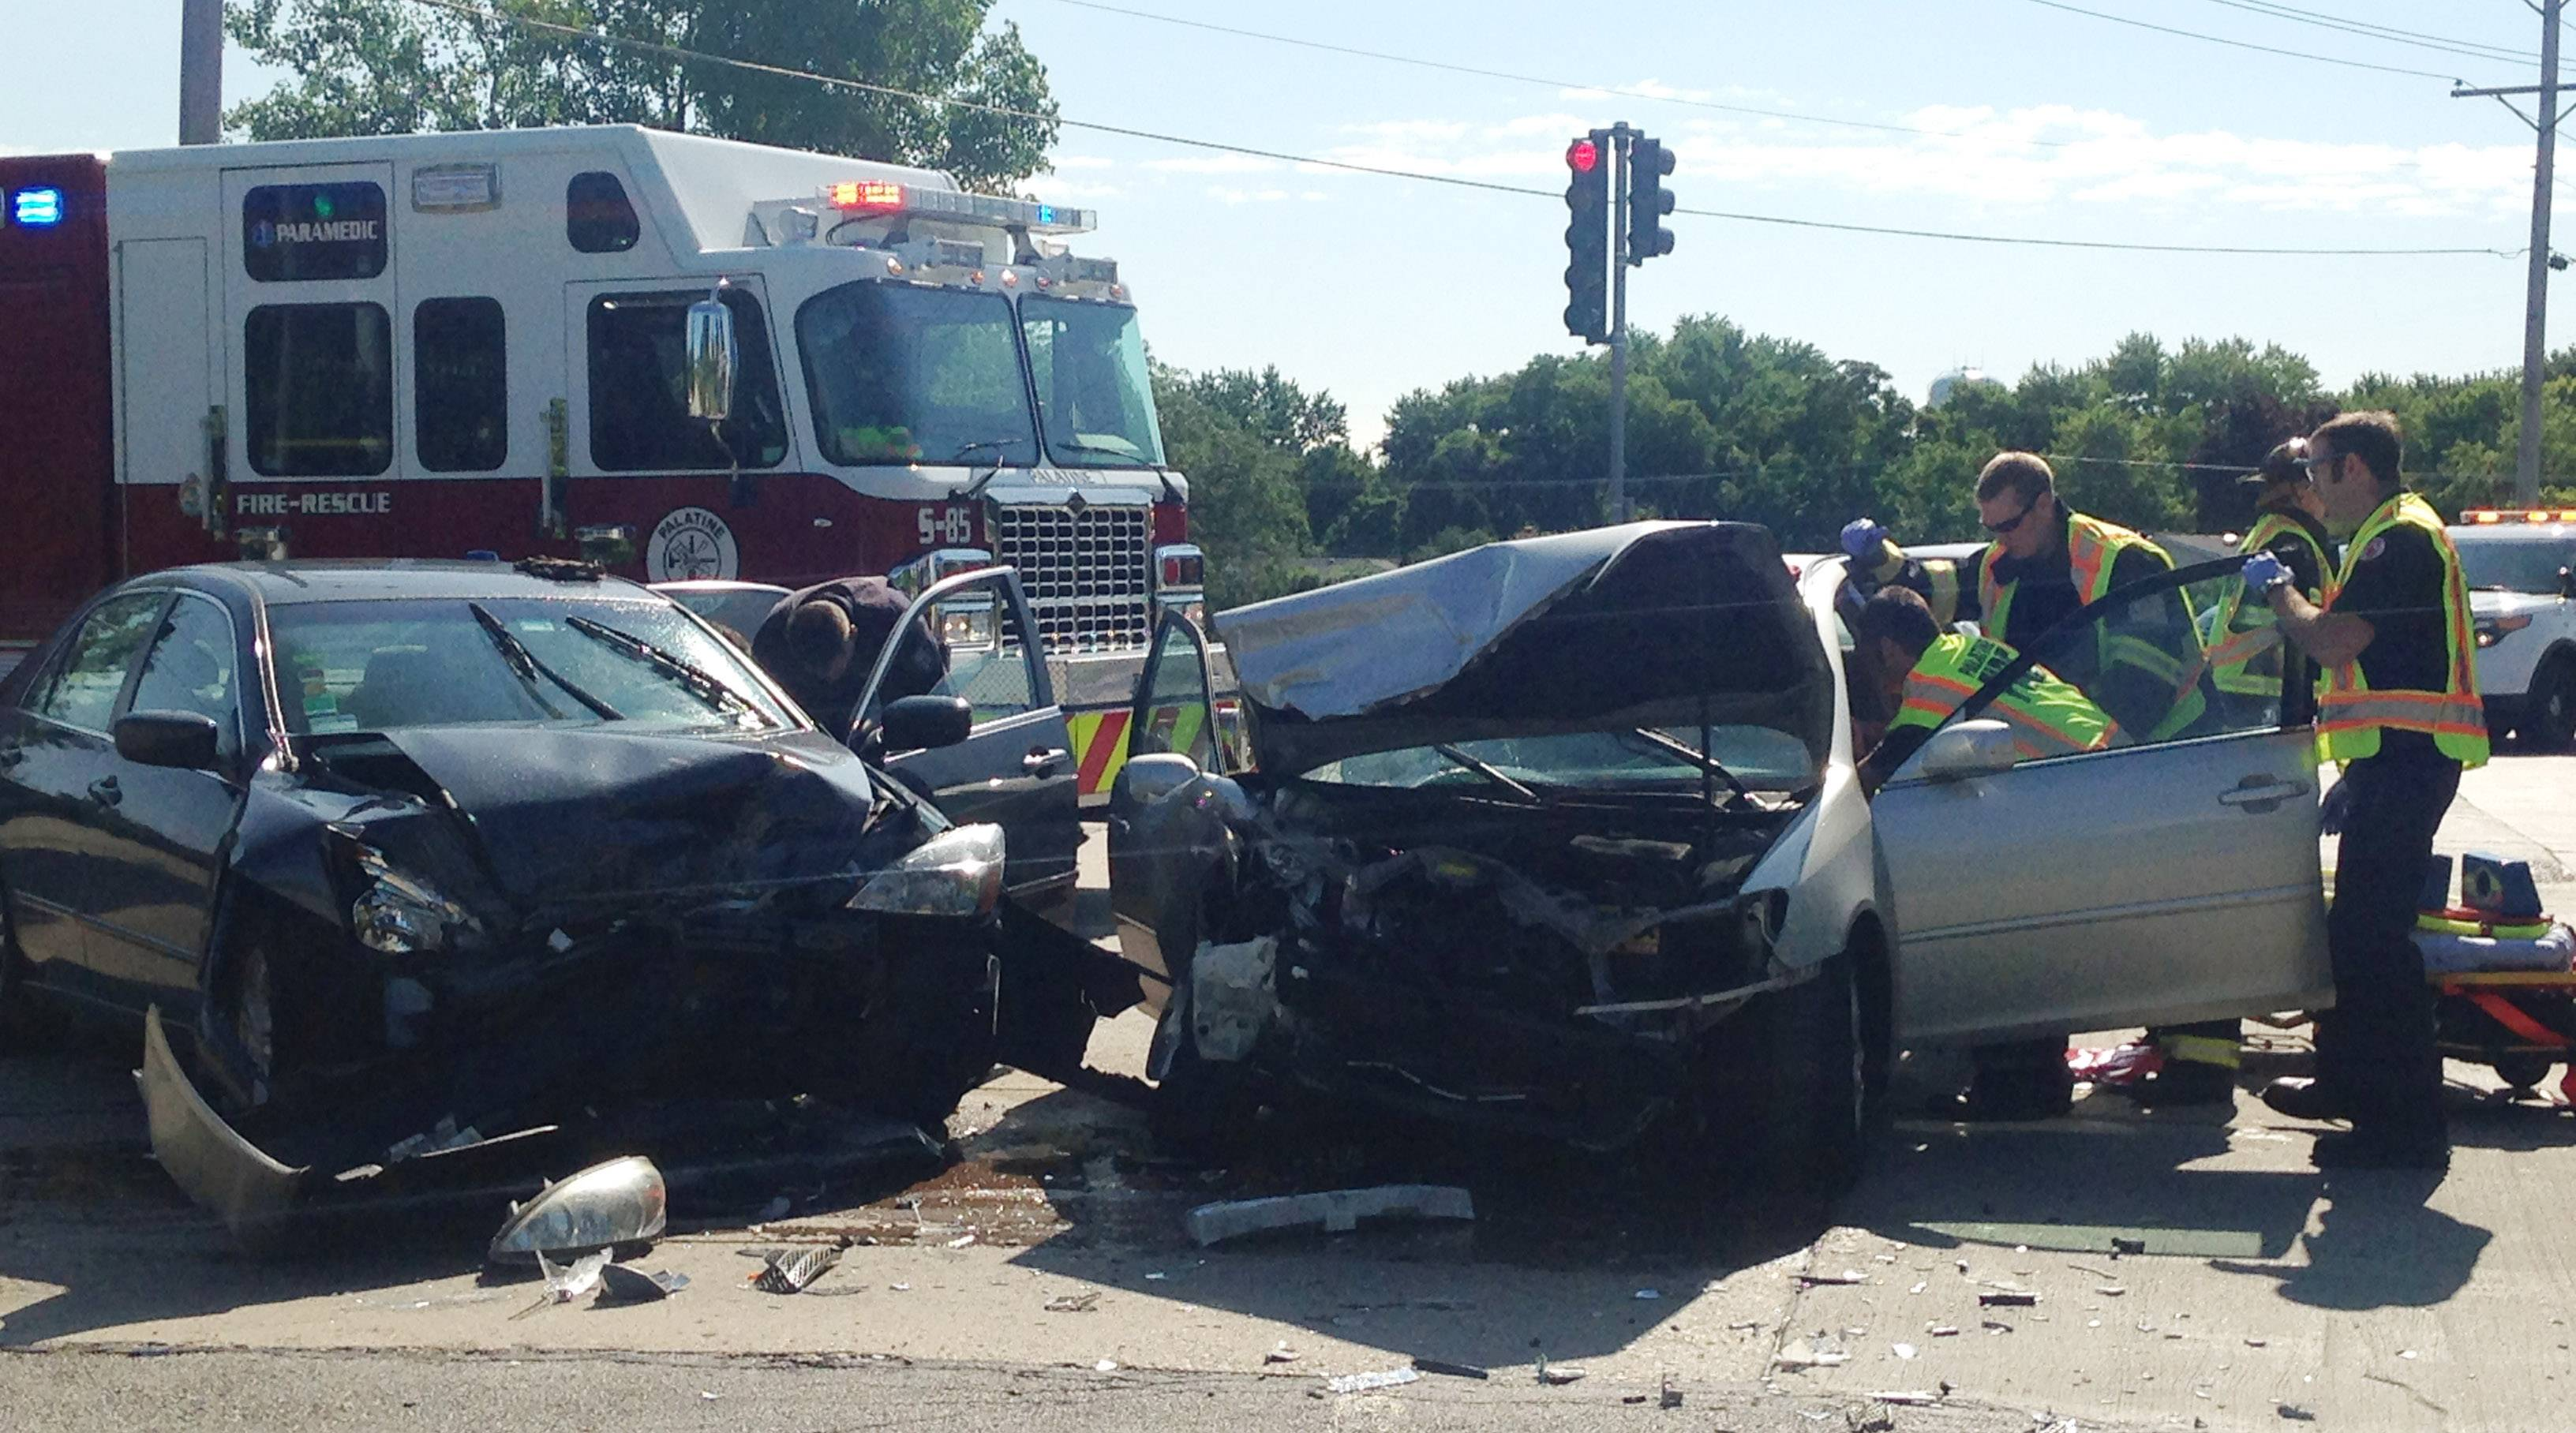 Emergency personnel respond to a two-car crash that took place in Palatine during the morning rush on Thursday.